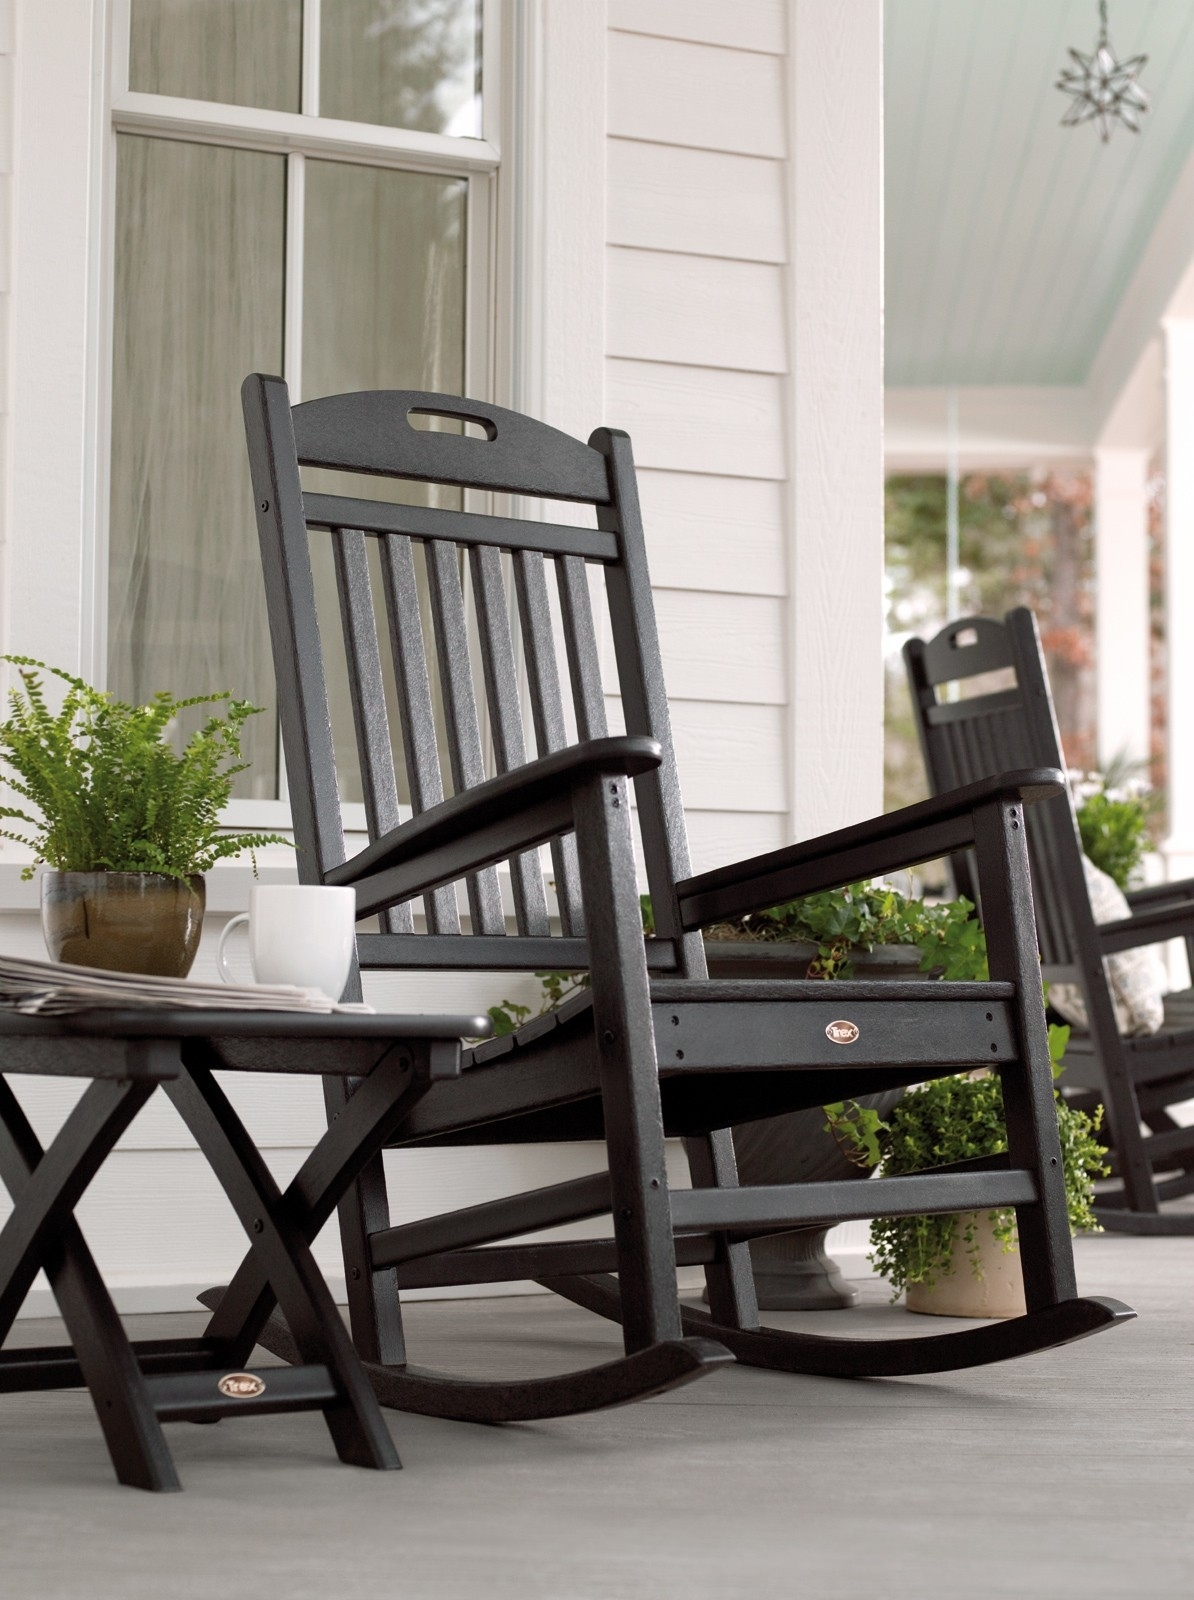 Popular Photo of Outdoor Rocking Chairs With Table